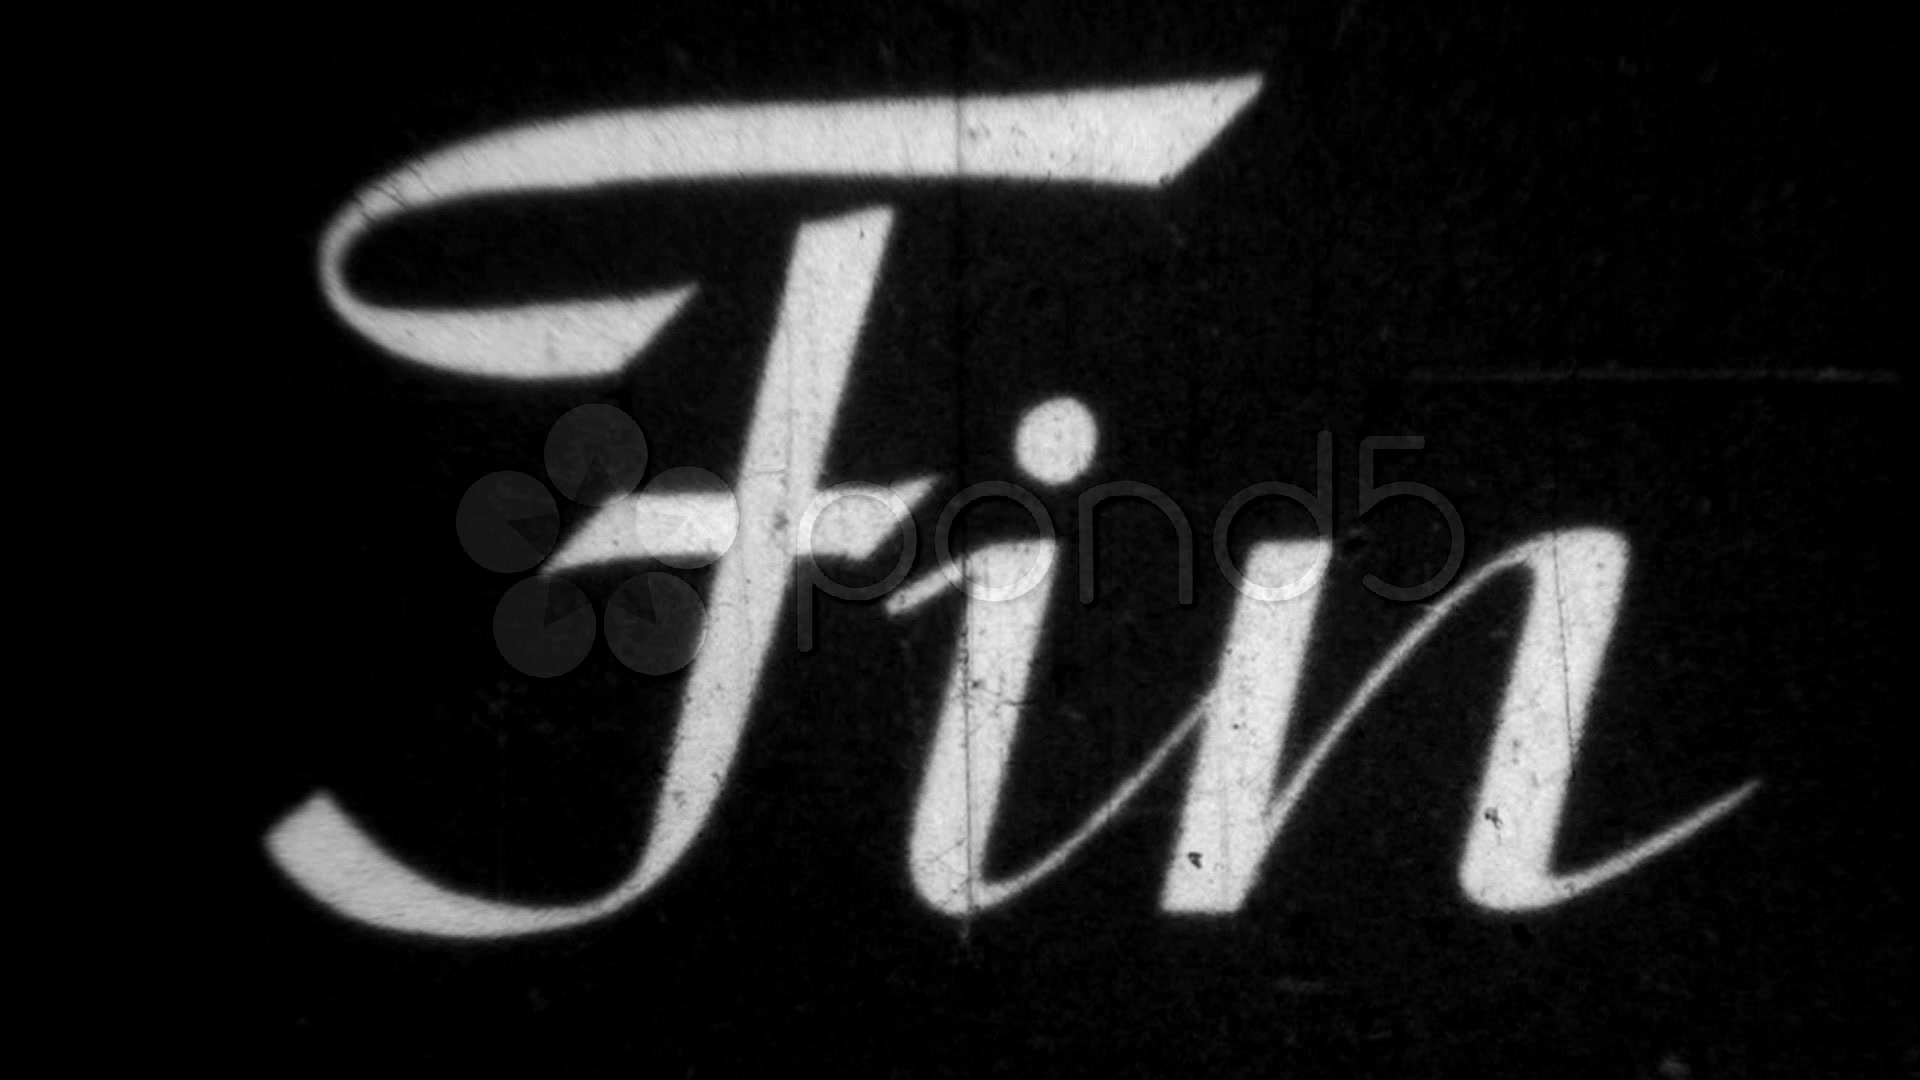 Vintage 8mm Film Tail - The End / fin ~ Stock Video #577205